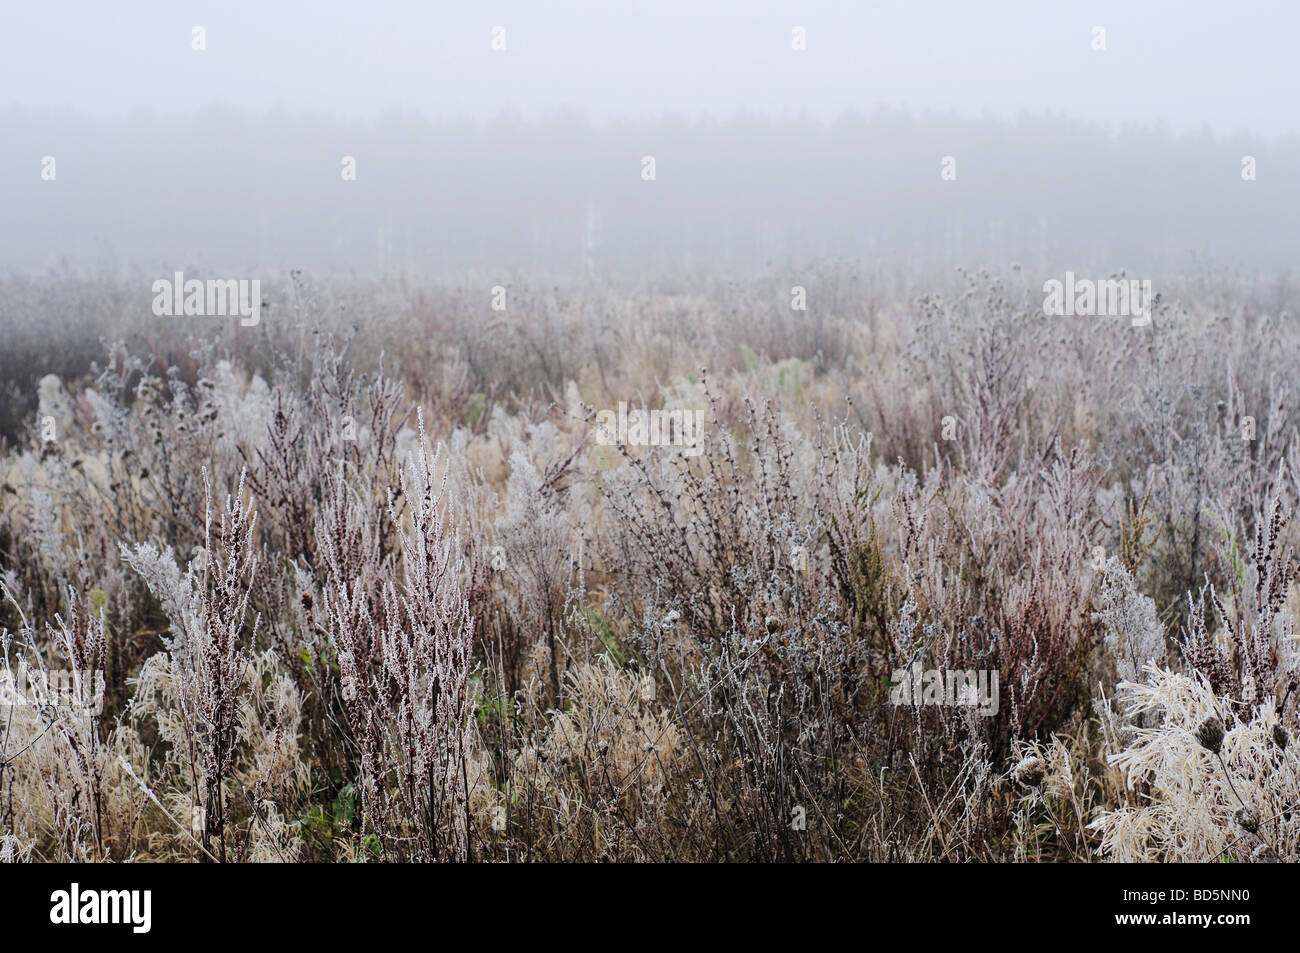 Misty landscape with vegetation covered in frost in Northern France - Stock Image